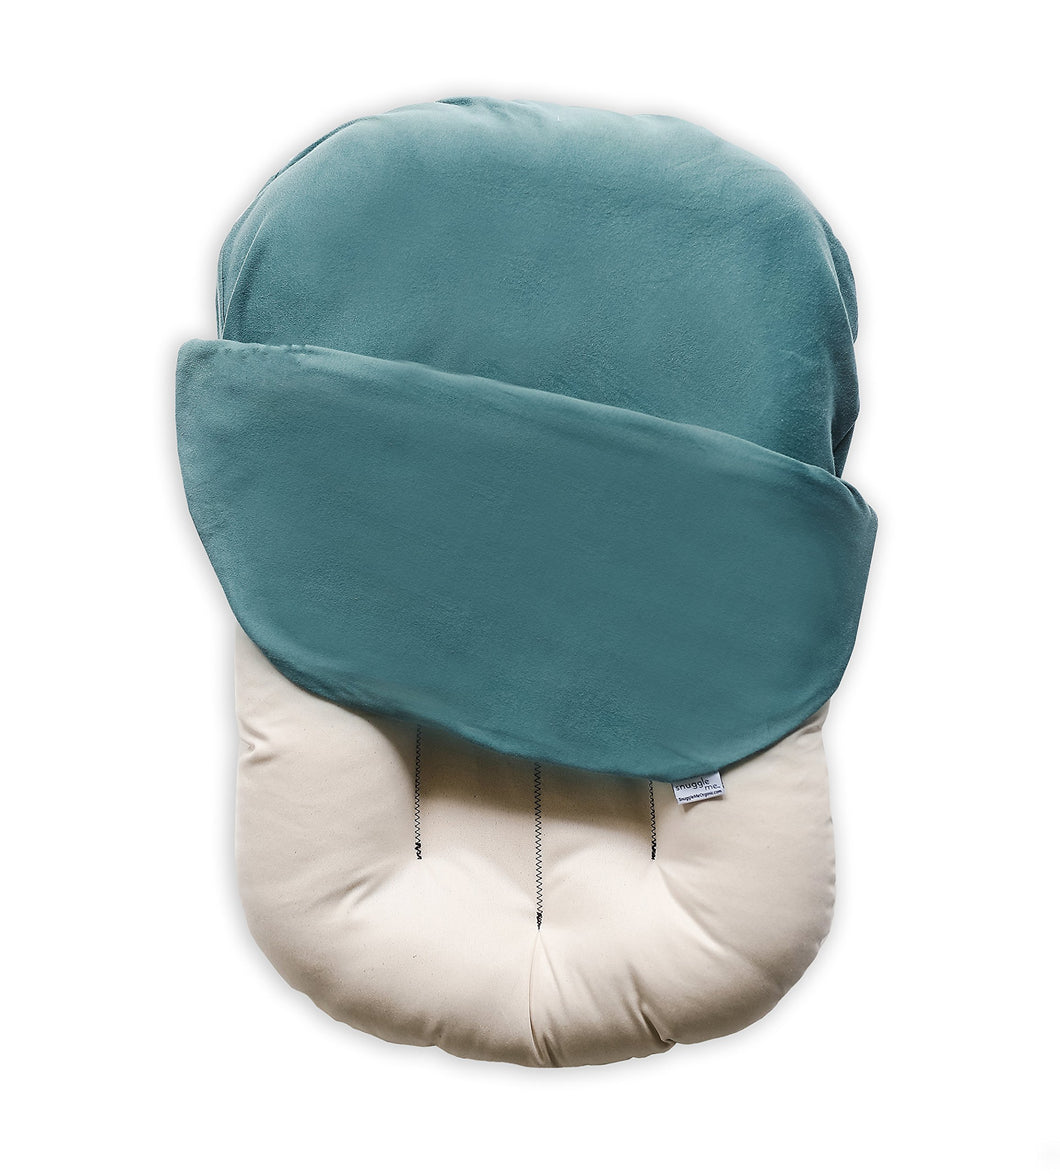 Snuggle Me Organic | Patented Sensory Lounger for Baby | Organic Cotton, Virgin Fiberfill | Moss